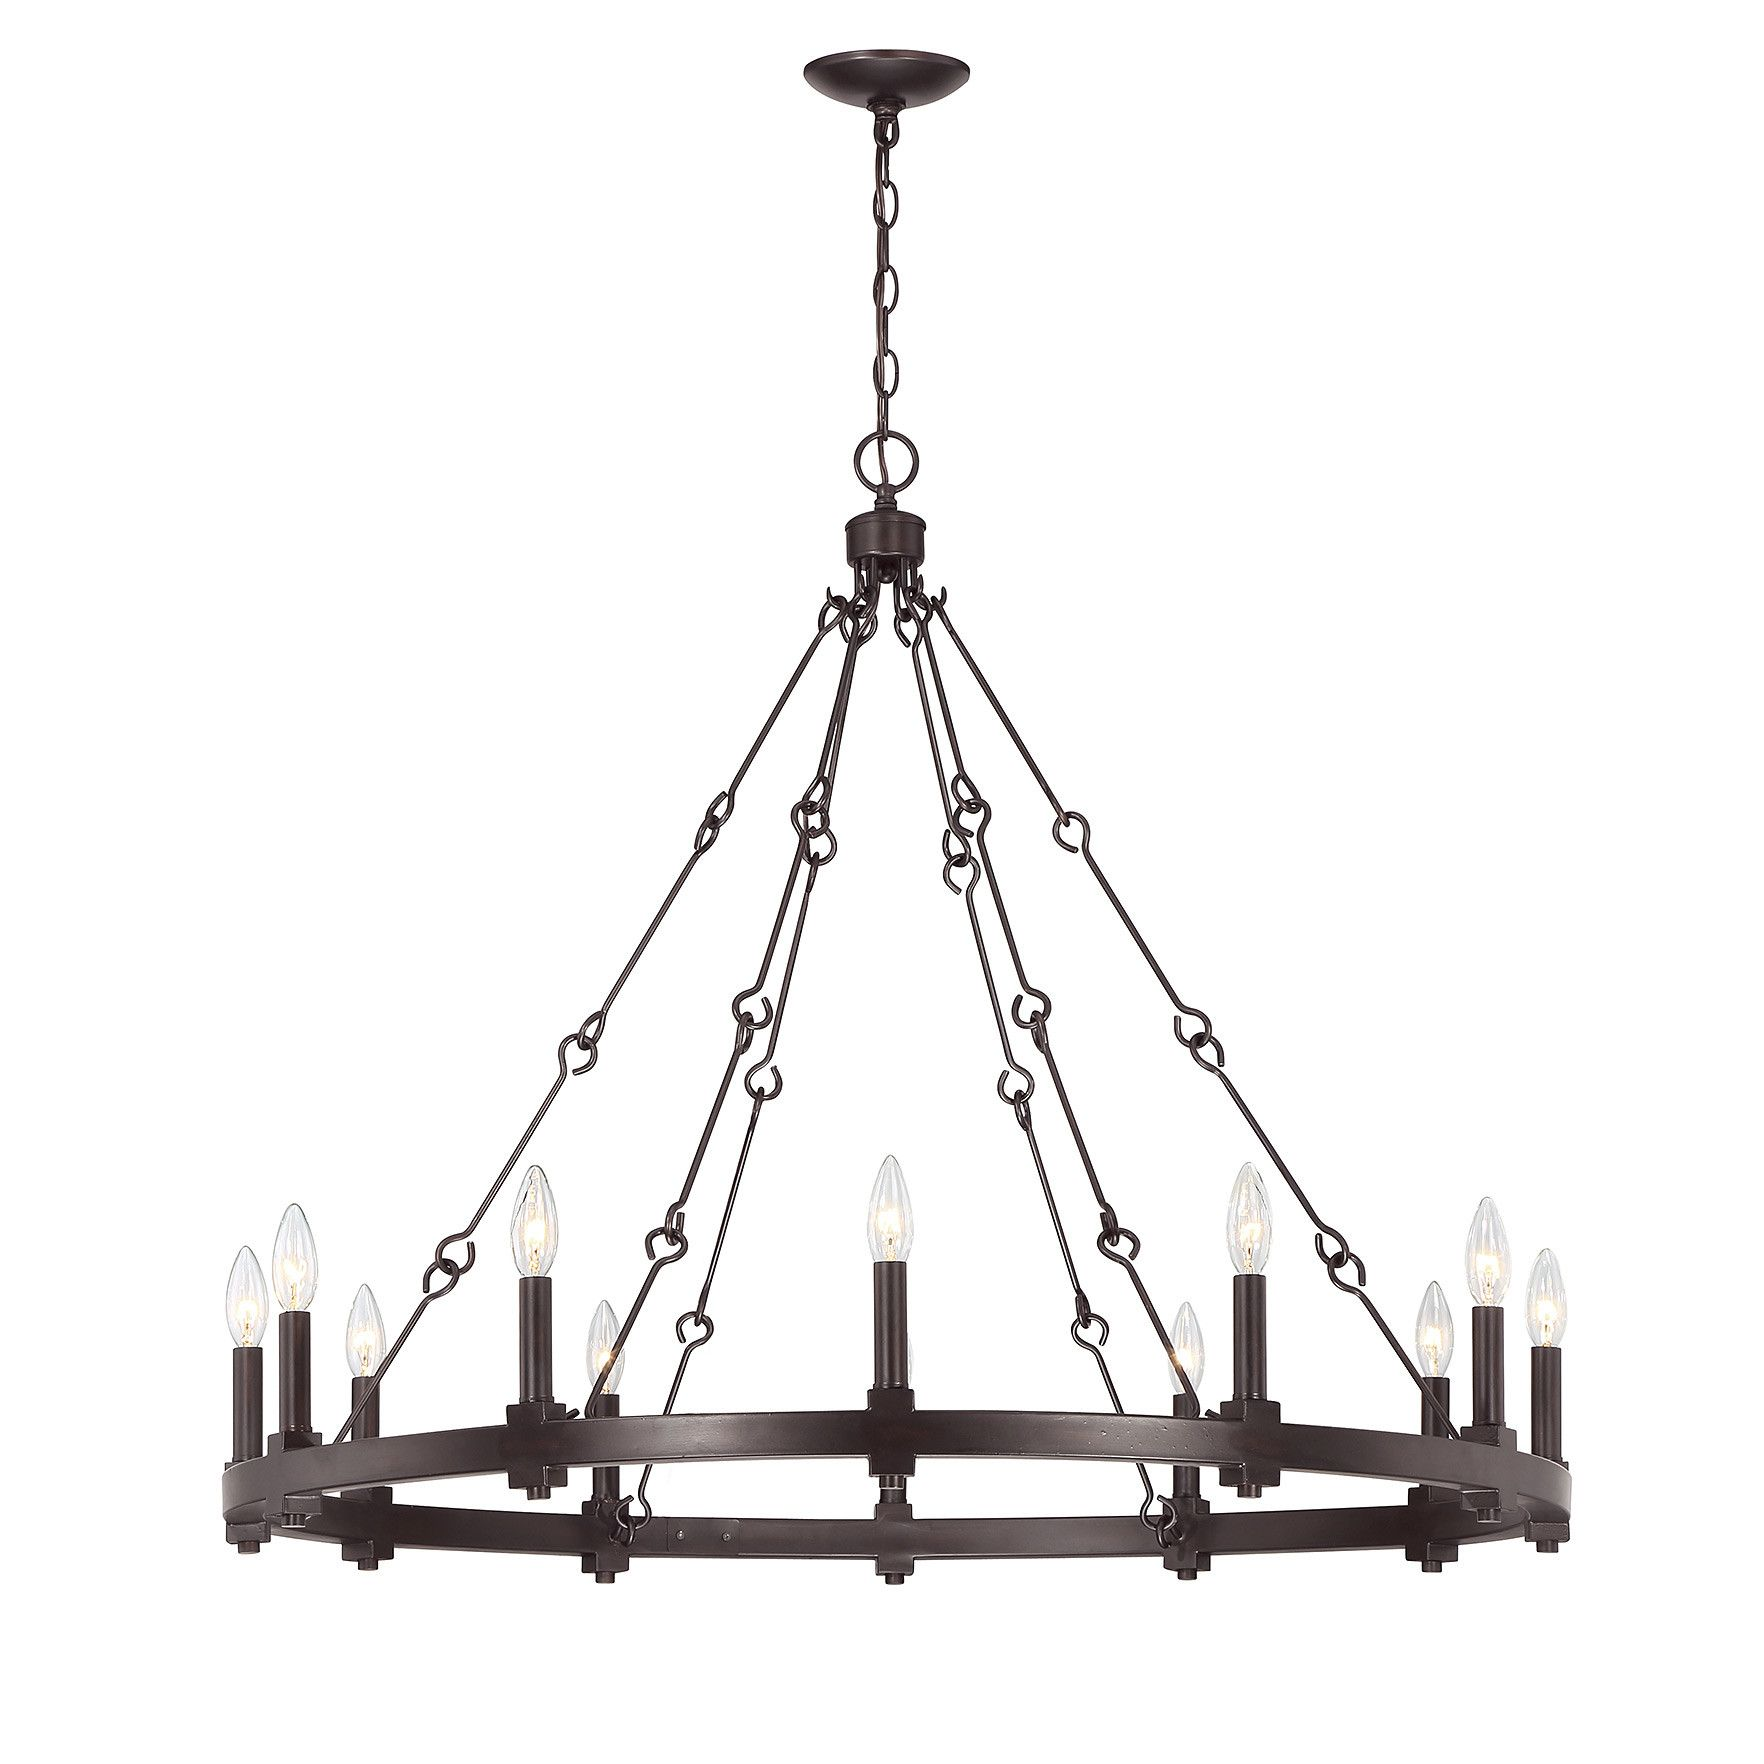 Montreal 12 light candle style chandelier modern farmhouse montreal 12 light candle style chandelier mozeypictures Gallery